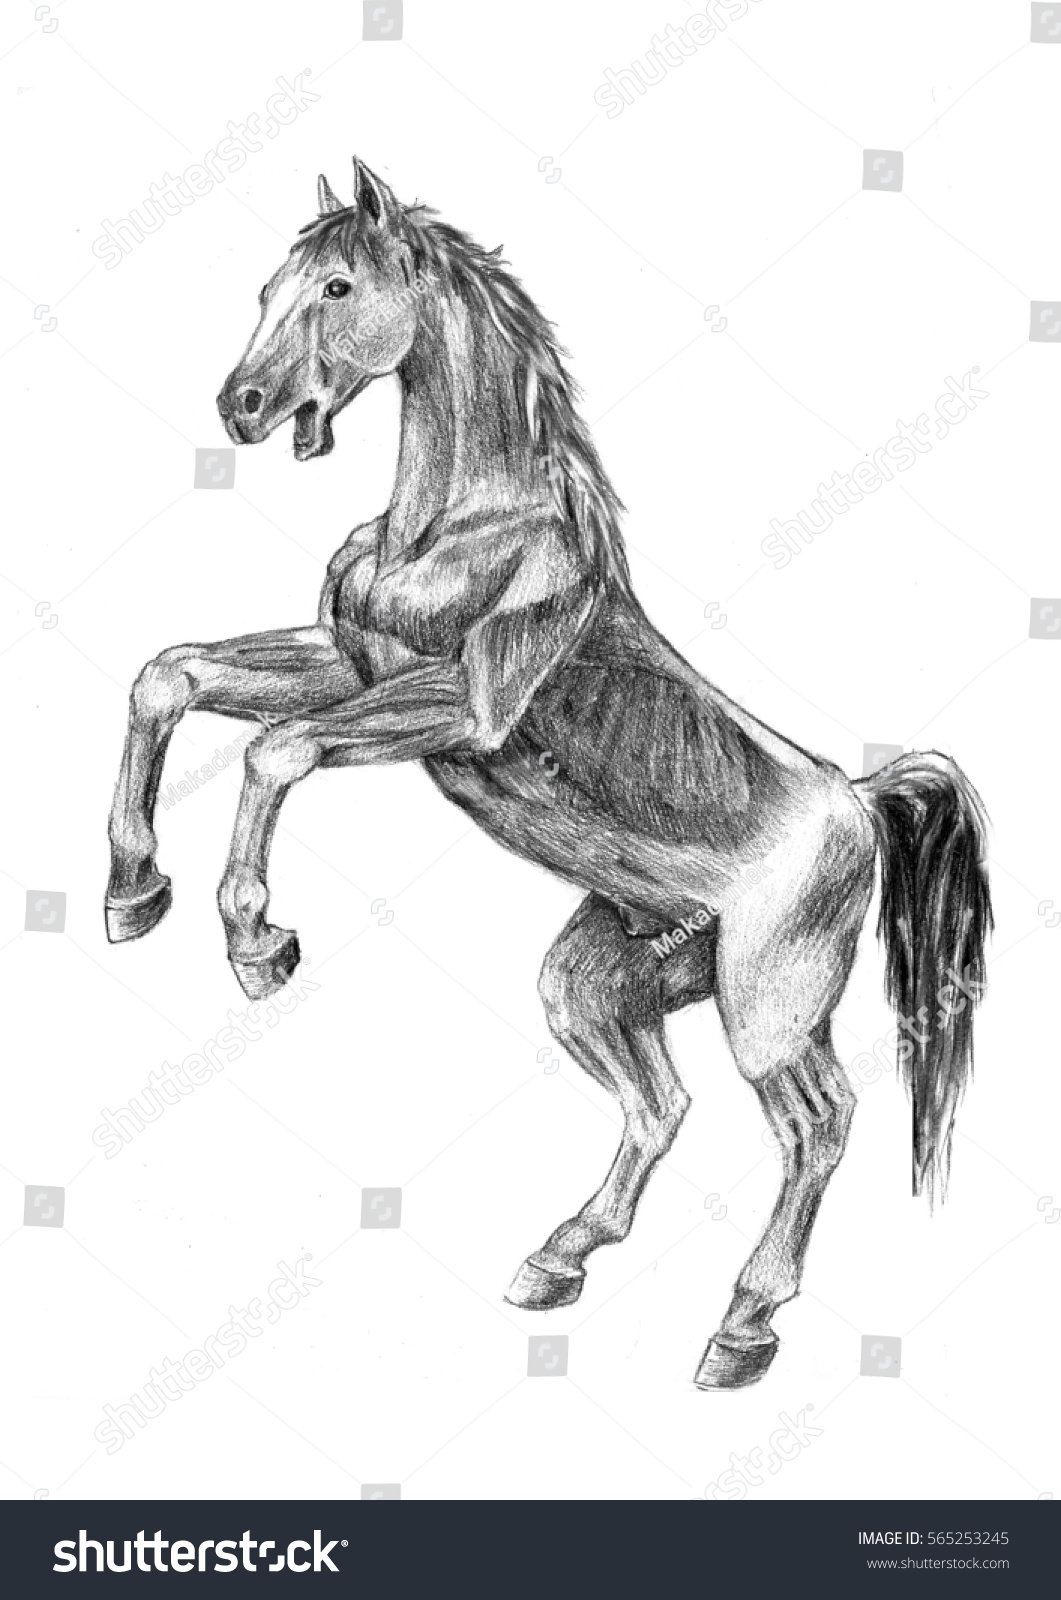 Thi Realistic Sketches Anatomy Horse Sketch Stock Illustration ...